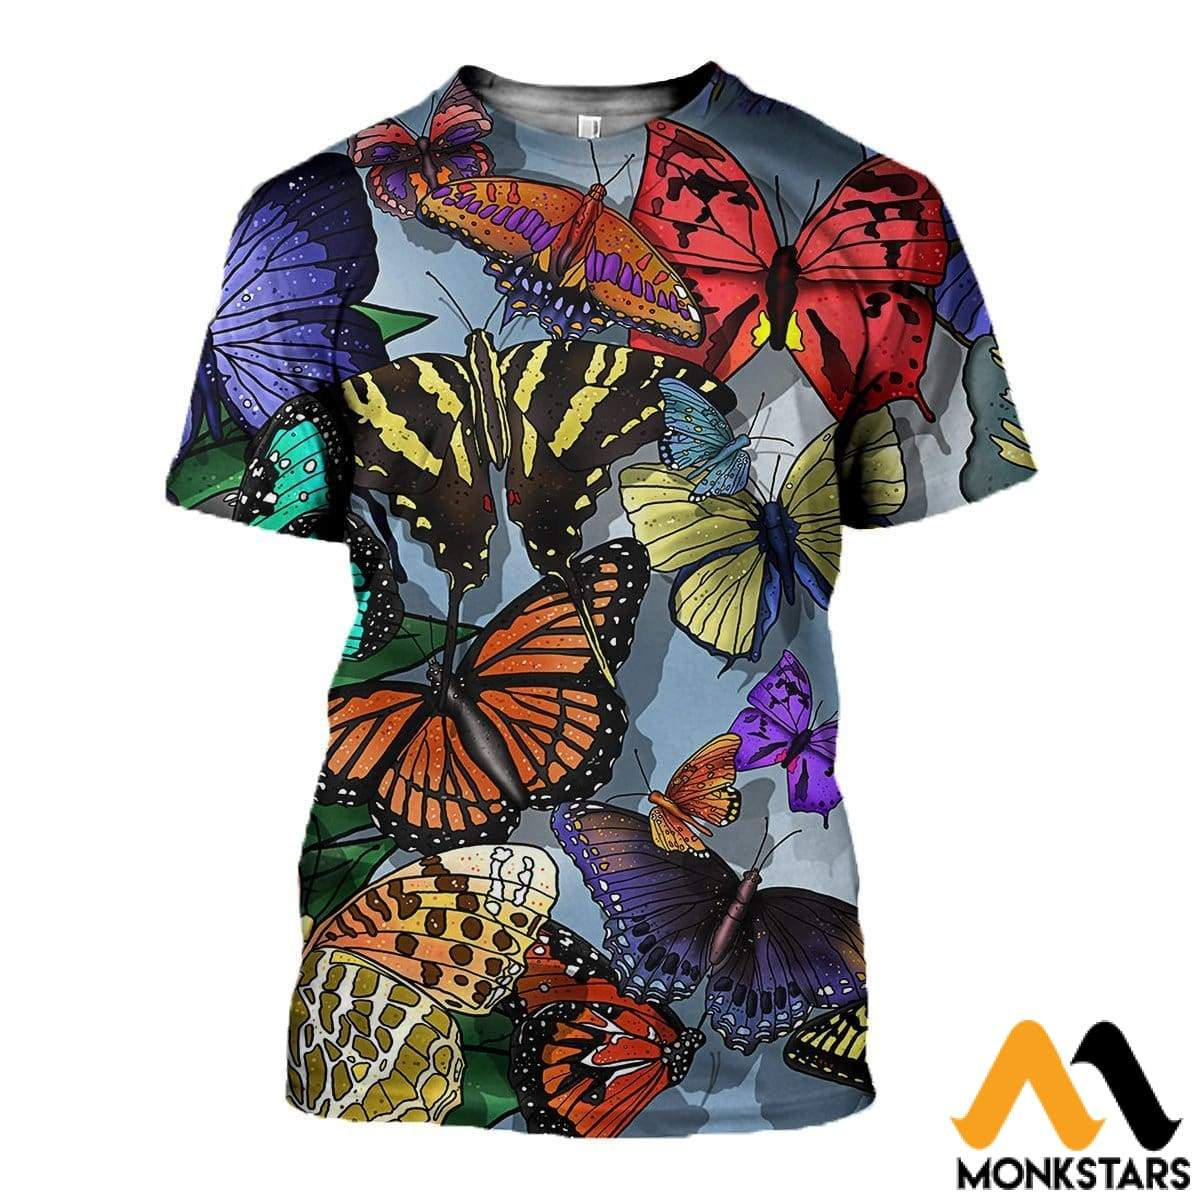 3D All Over Printed Butterflies T-Shirt Hoodie Sctl100404 / Xs Clothes